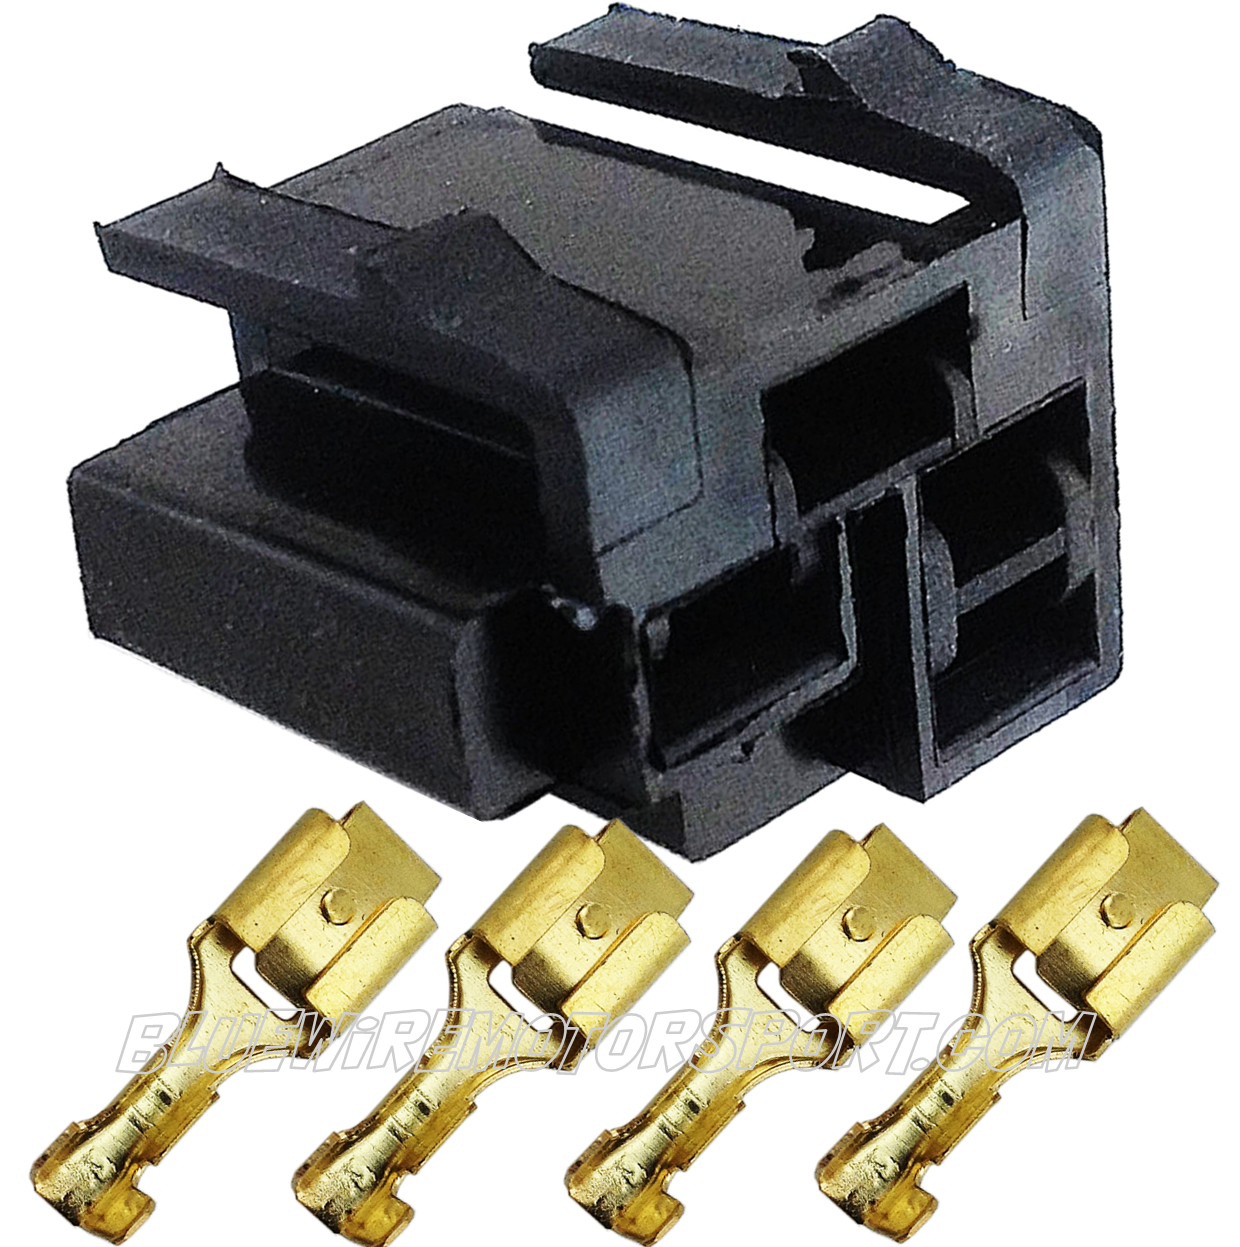 Our Gm Holden Ignition Connector Allows You To Connect Your Gm